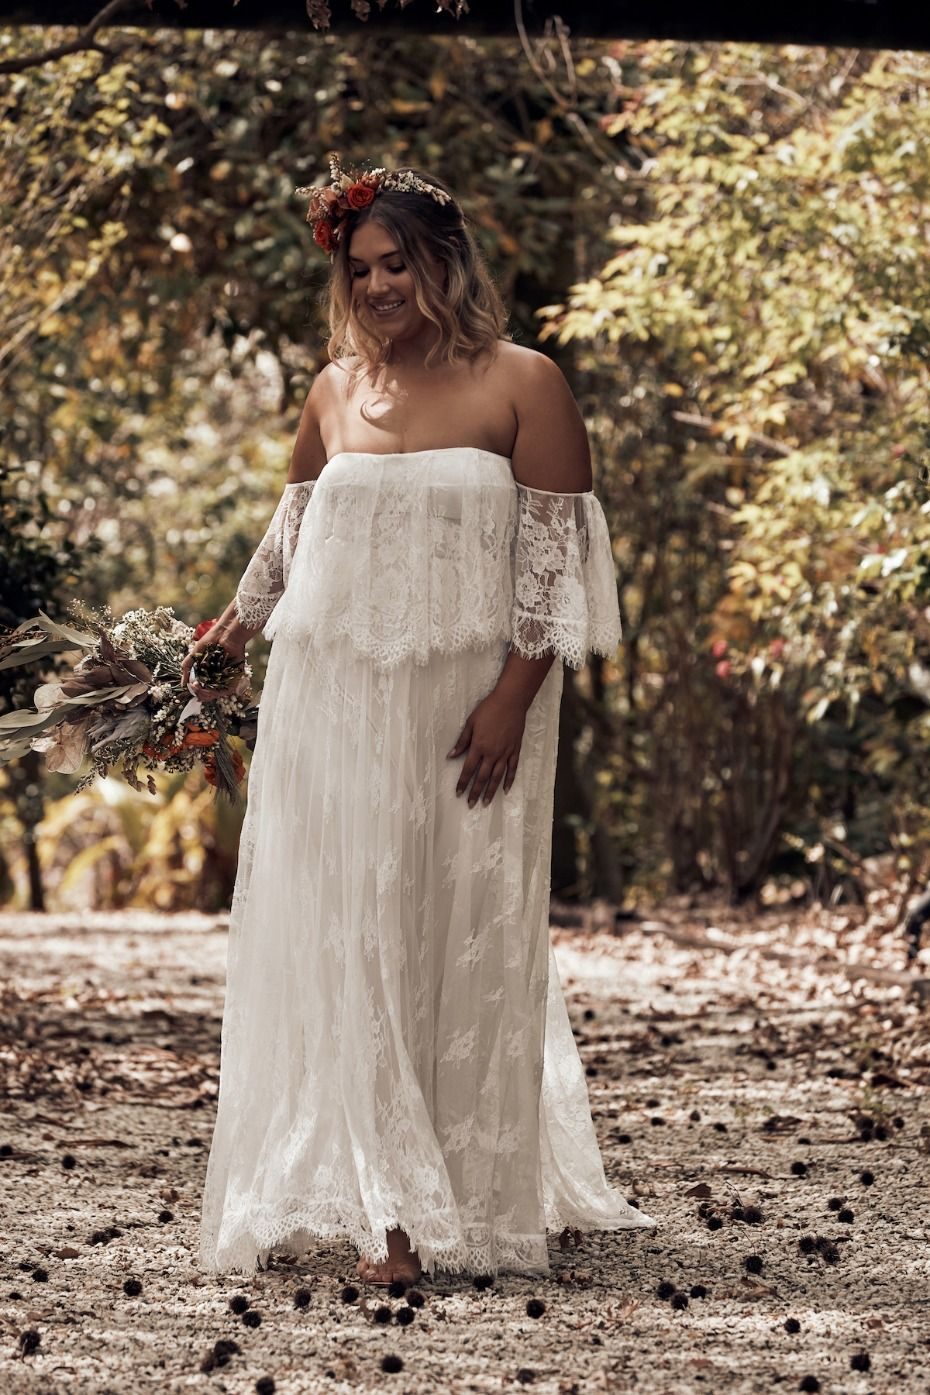 a95008b9fd66 Grace Loves Lace Franca Gown for Icon Collection #graceloveslace #bride # bridal #wedding